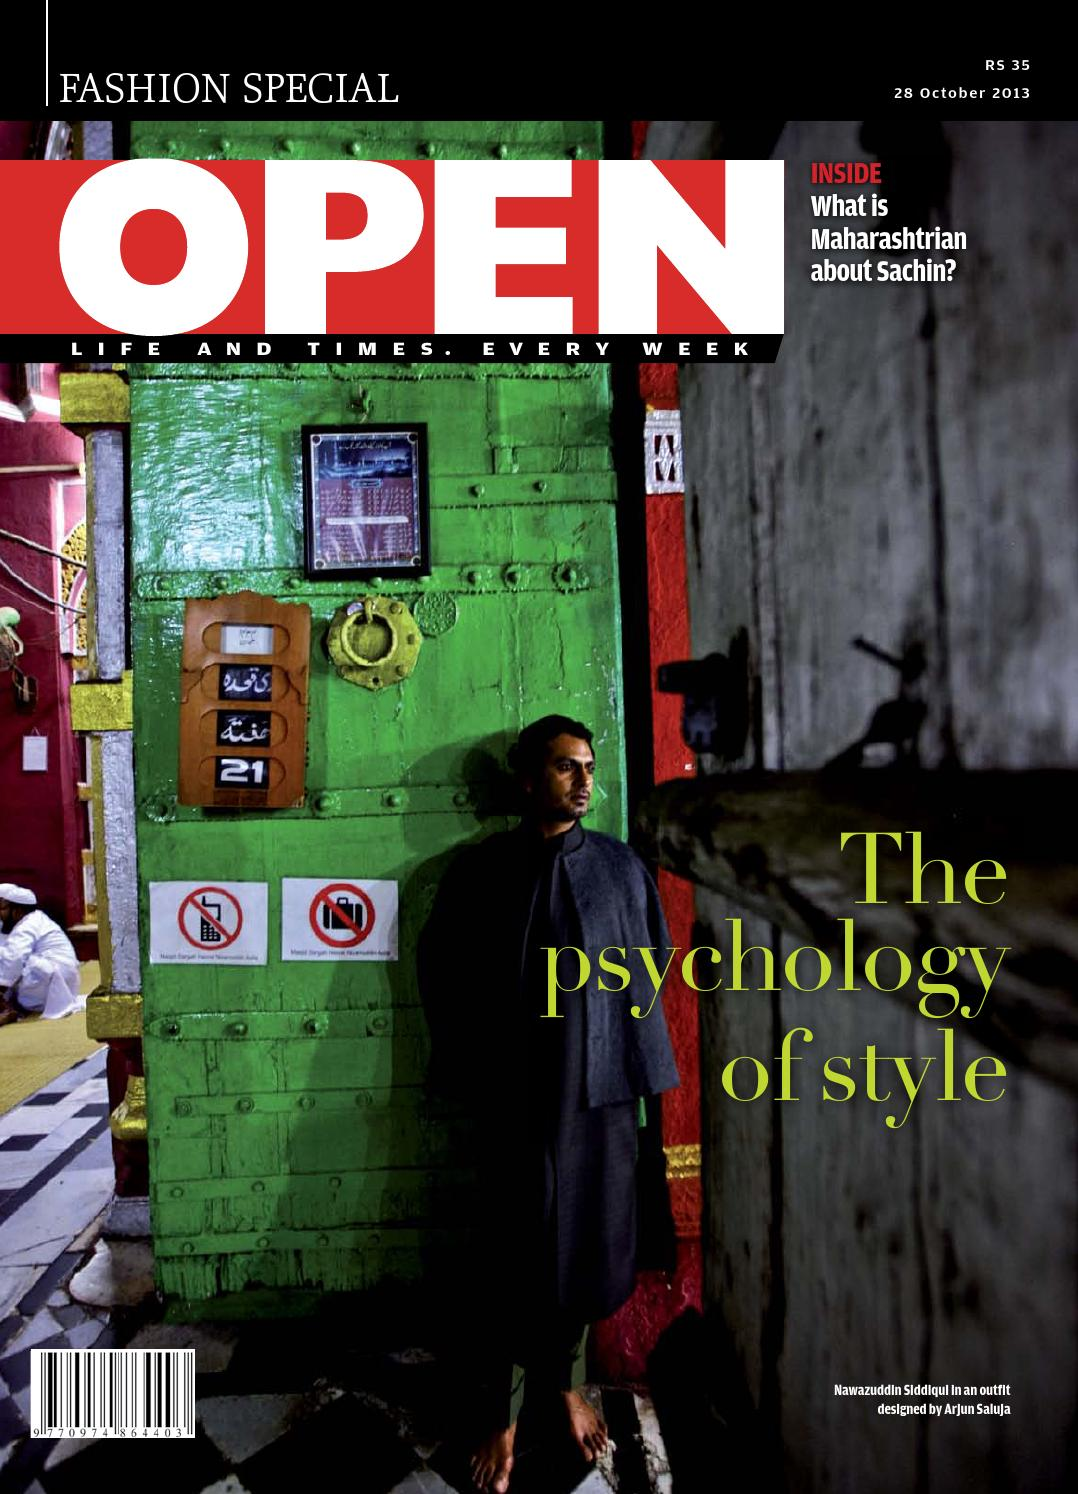 OPEN Magazine 28 October 2013 by Open Media Network - issuu